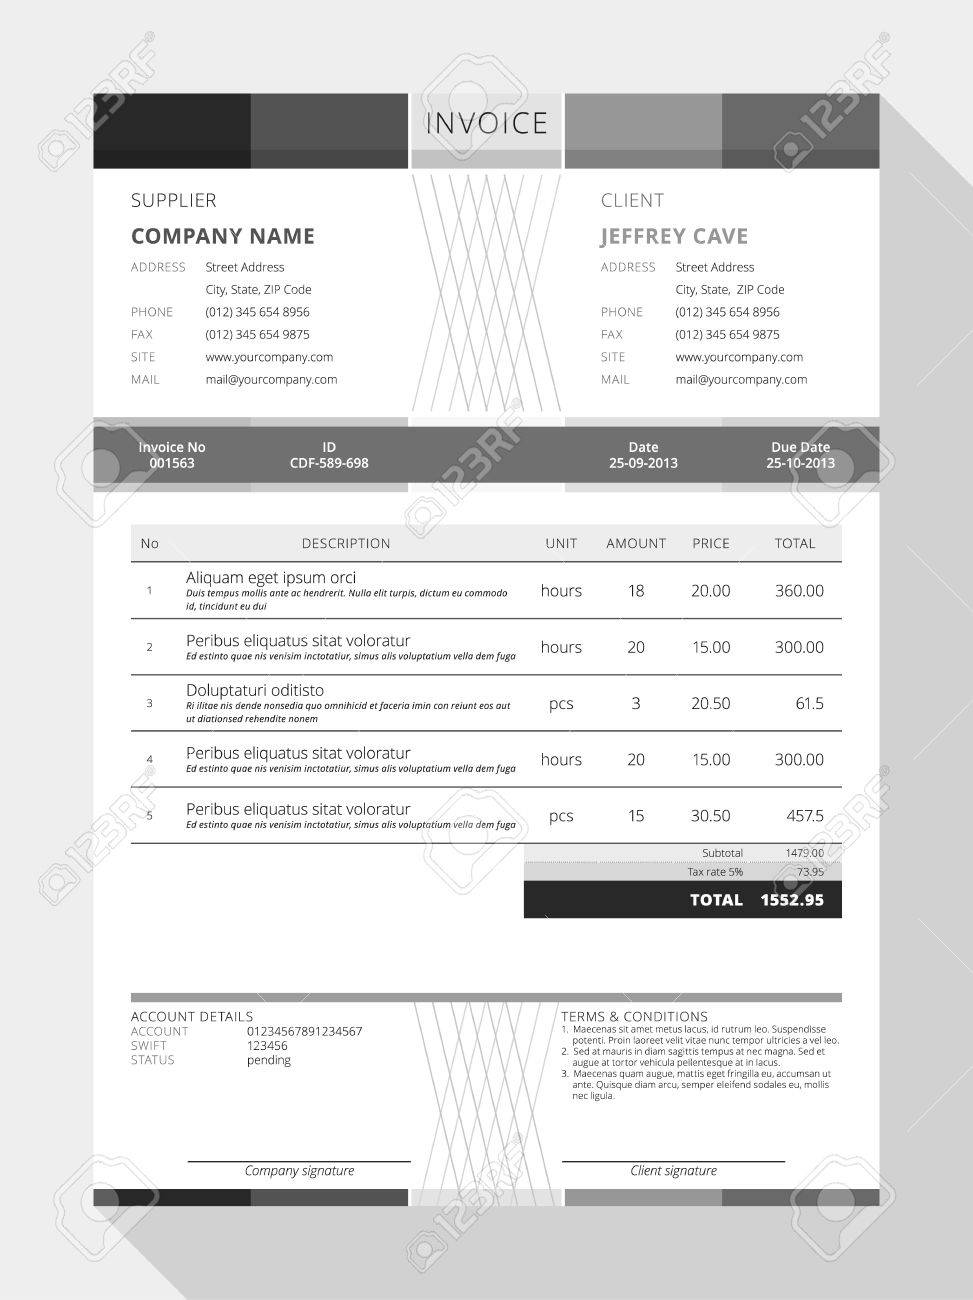 Pxworkoutfreeus  Picturesque Design An Invoice  Professional Graphic Design Invoice  With Handsome Vector Customizable Invoice Form Template Design Vector   Design An Invoice With Amazing How To Get Receipts Also Official Receipt Template In Addition Brother Receipt Scanner And Photography Receipt Template As Well As Deposit Receipts Additionally Walmart Policy On Returns Without Receipt From Happytomco With Pxworkoutfreeus  Handsome Design An Invoice  Professional Graphic Design Invoice  With Amazing Vector Customizable Invoice Form Template Design Vector   Design An Invoice And Picturesque How To Get Receipts Also Official Receipt Template In Addition Brother Receipt Scanner From Happytomco